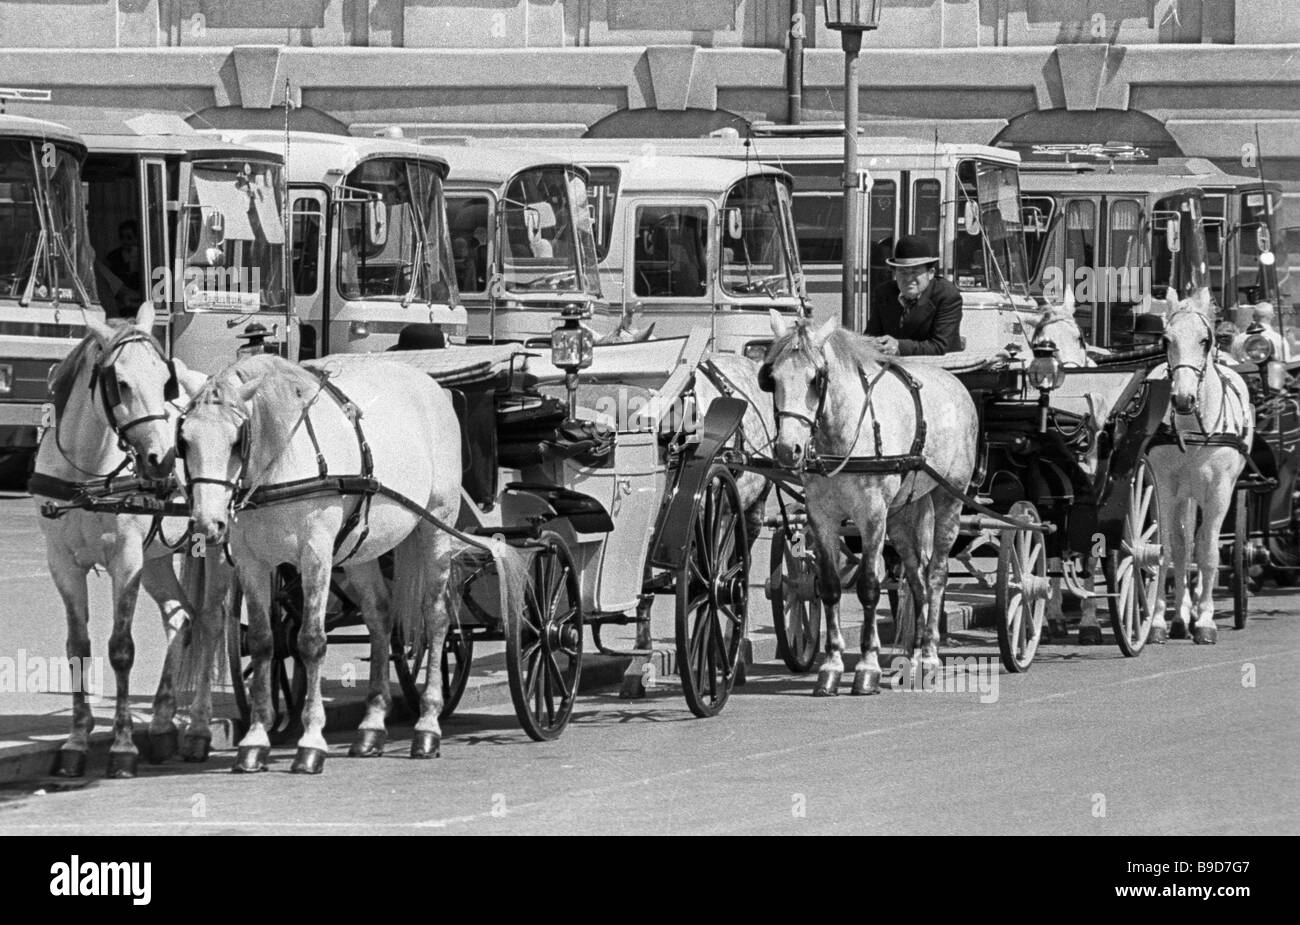 Buses and horse driven carriages on Vienna streets - Stock Image